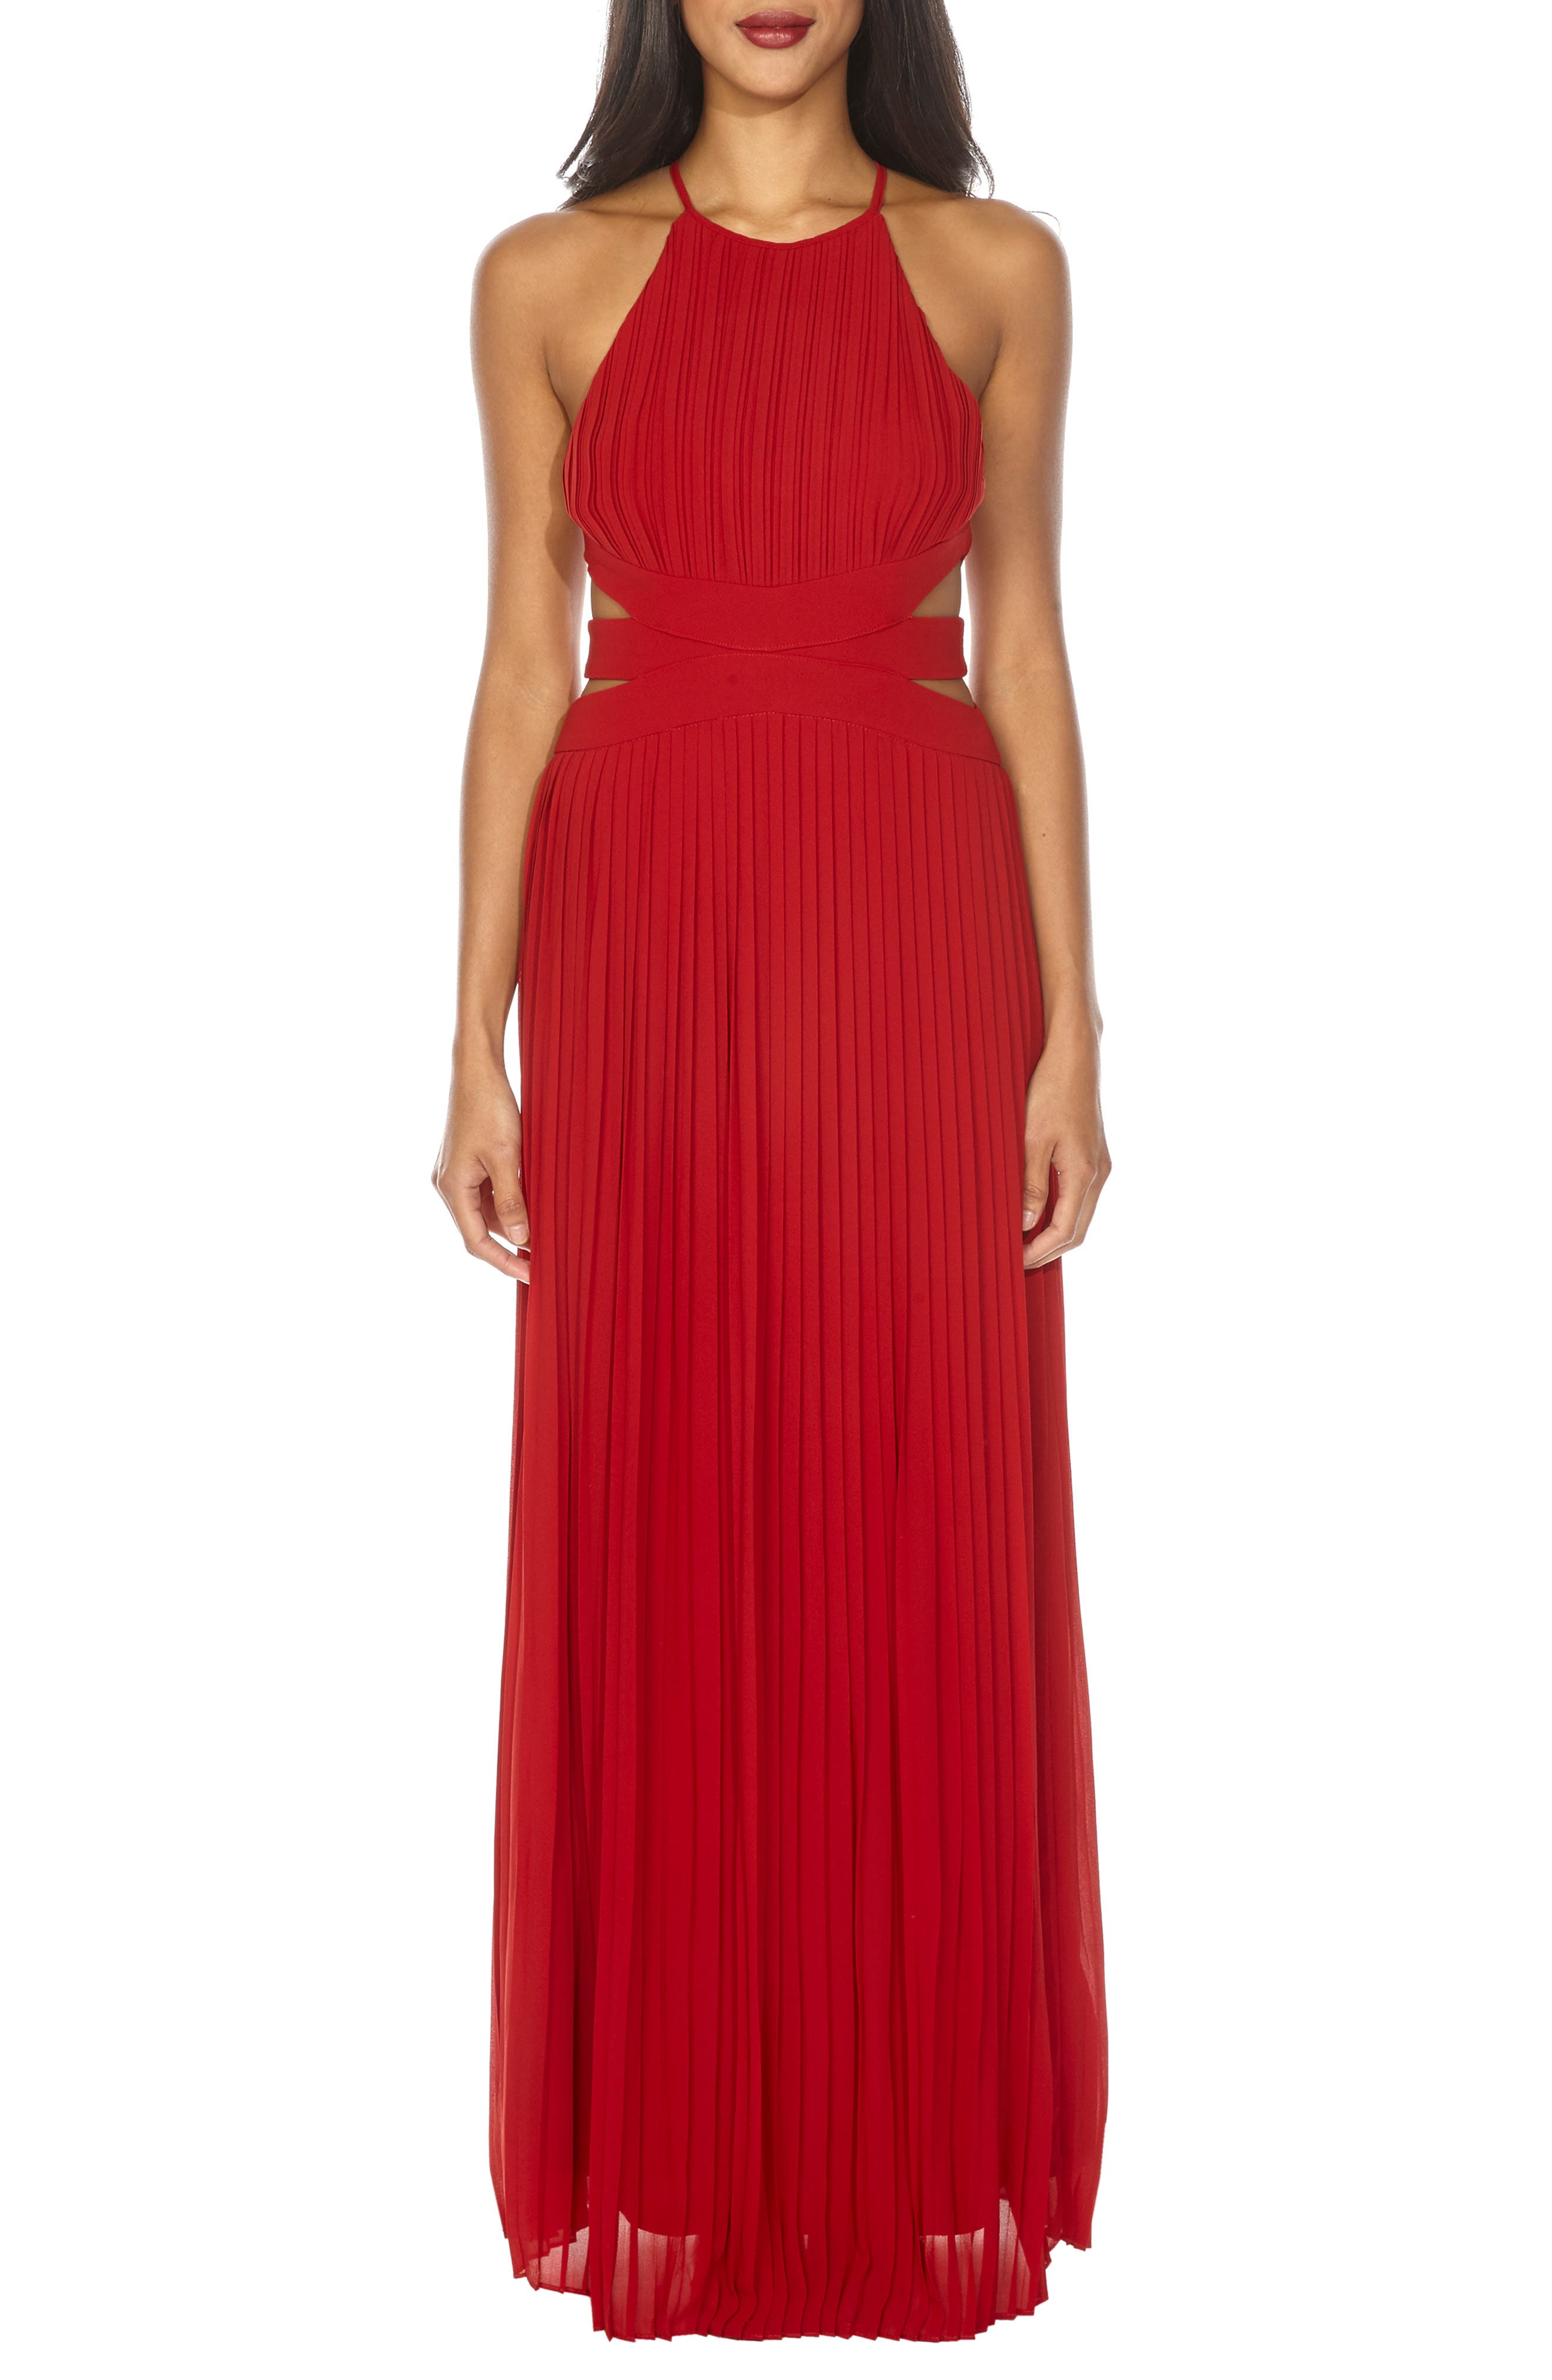 Boston Cutout Maxi Dress,                         Main,                         color, RUBY RED